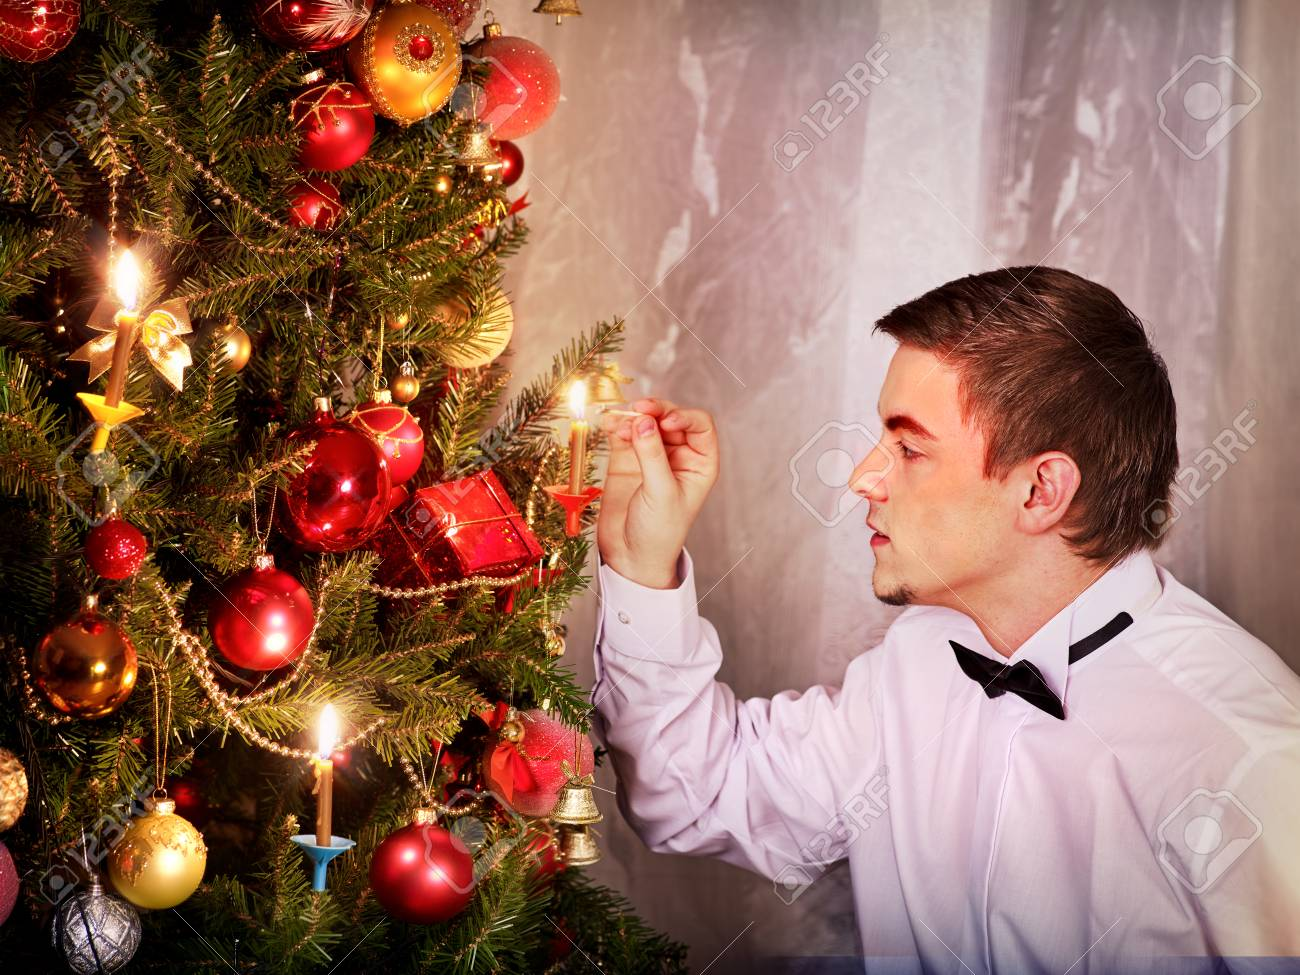 Man Dressing Christmas Tree Expectation Of Holiday On Eve Xmas Party At Home Alone